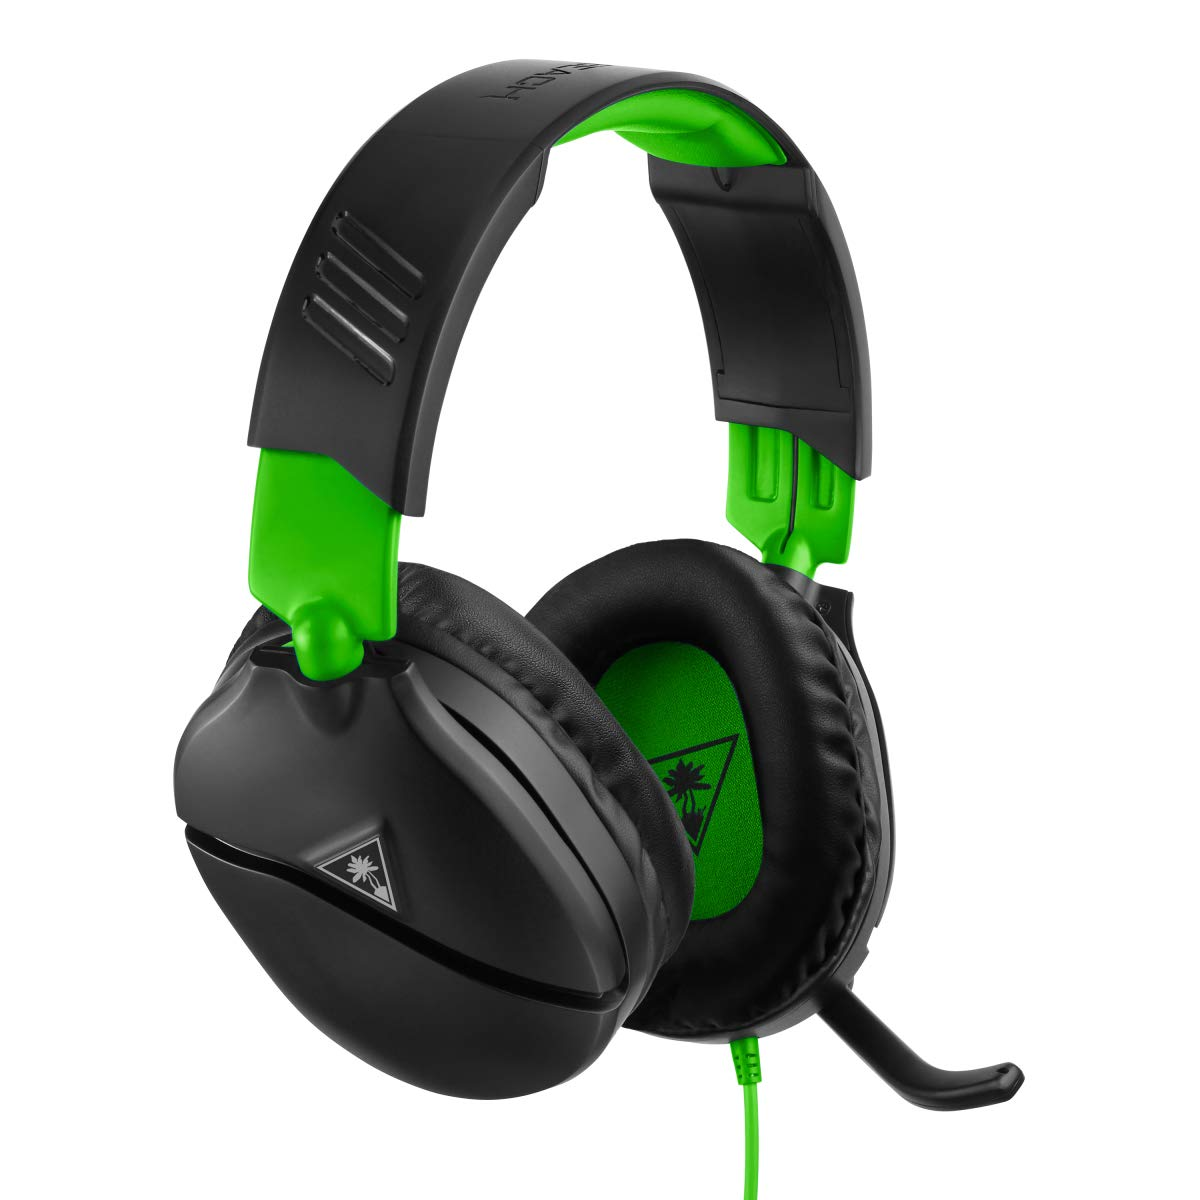 Turtle Beach Recon 70 White Gaming Headset for Xbox One, PlayStation 4 Pro, PlayStation 4, Nintendo Switch, PC, and…